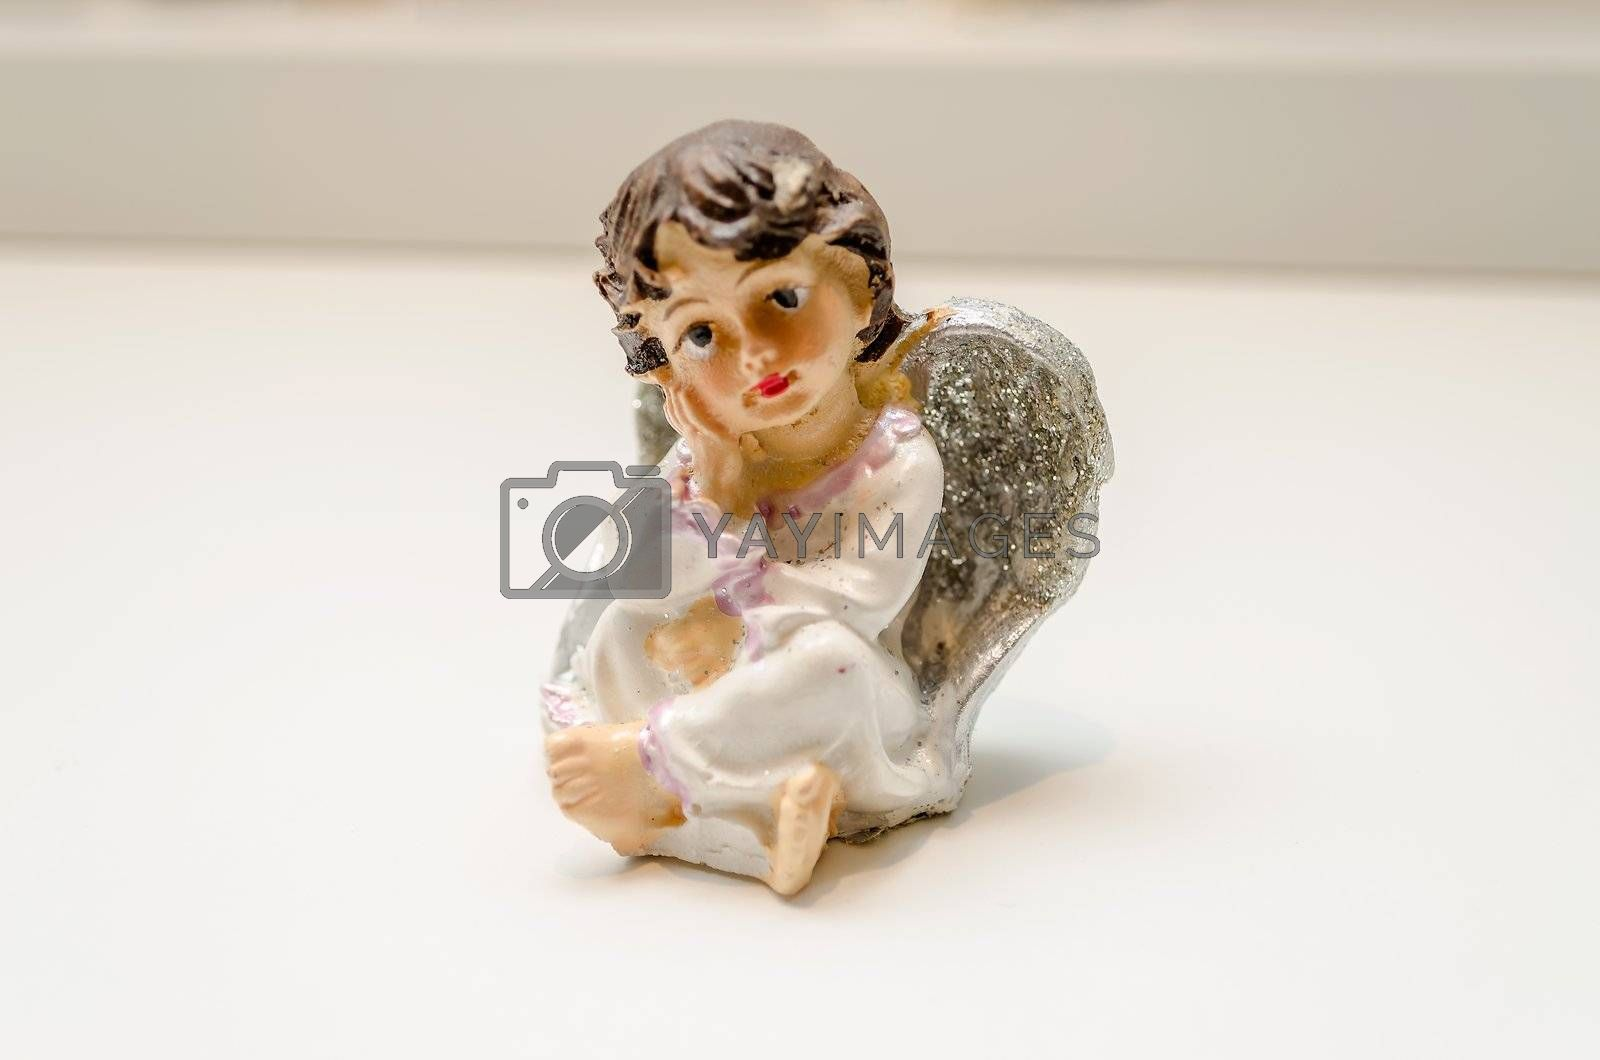 Ceramic Statuette of a Melancholic Cute Angel